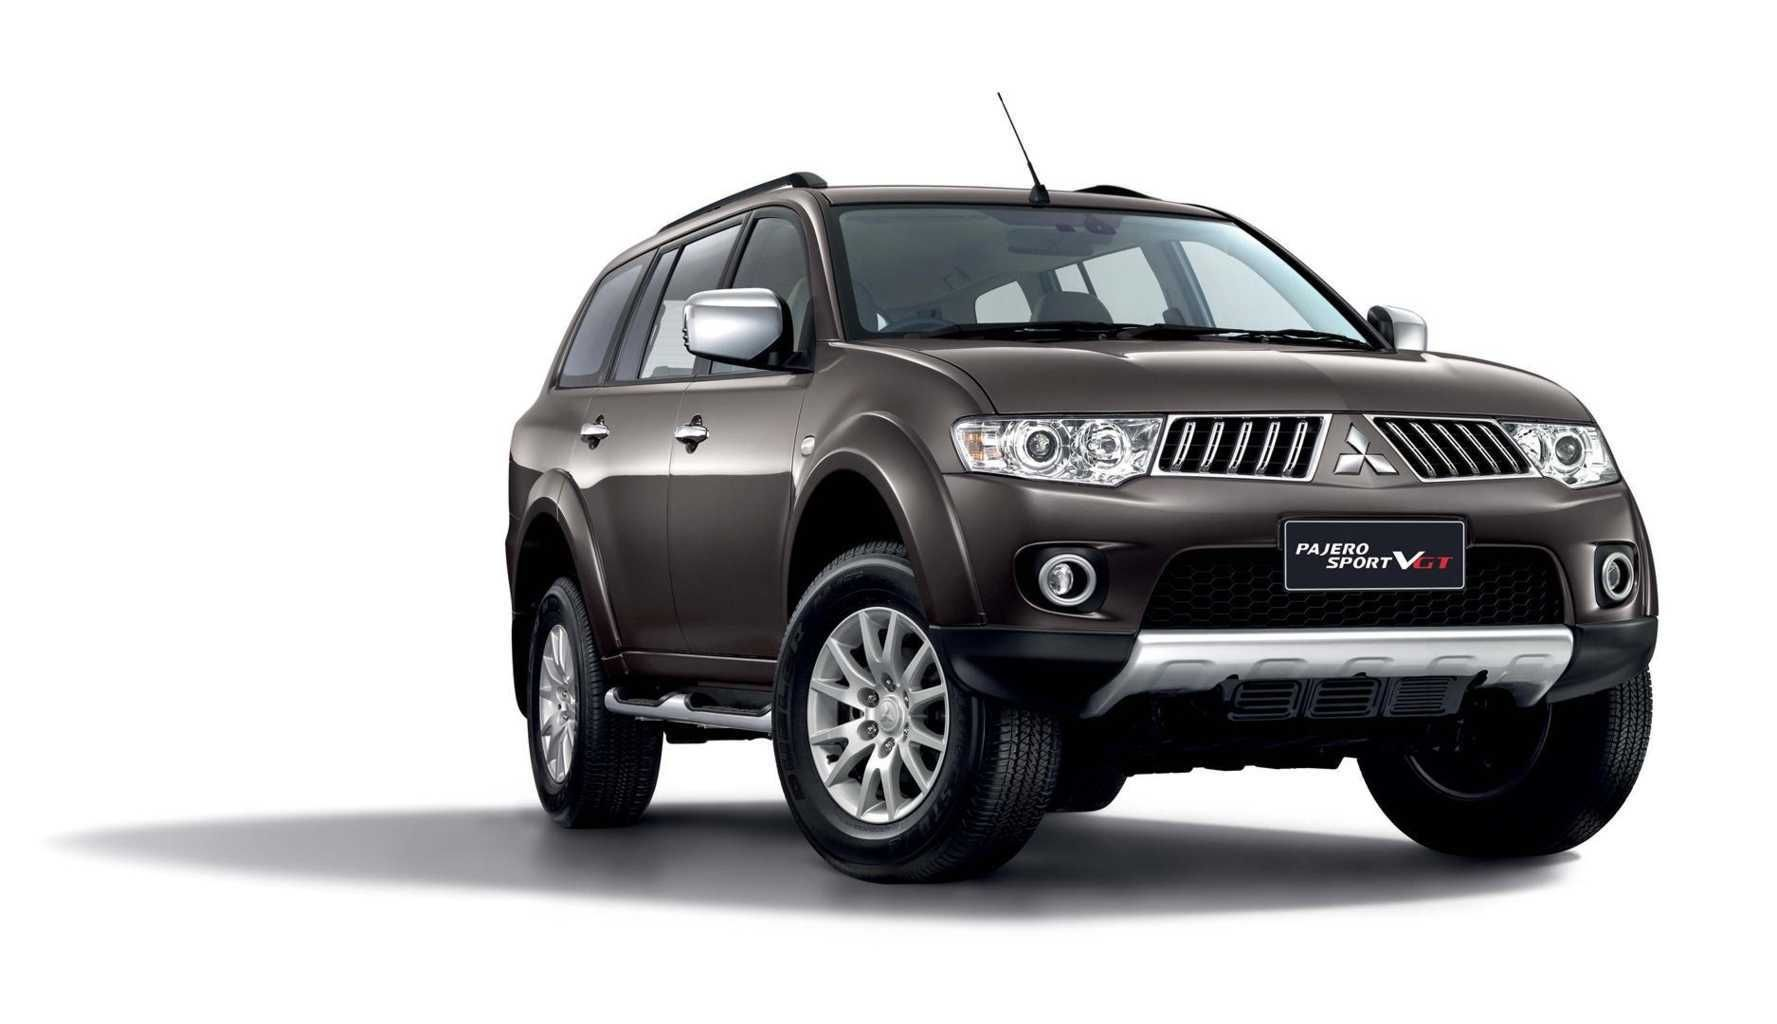 1000 images about montero sport g2 on pinterest presents mitsubishi pajero and innovation